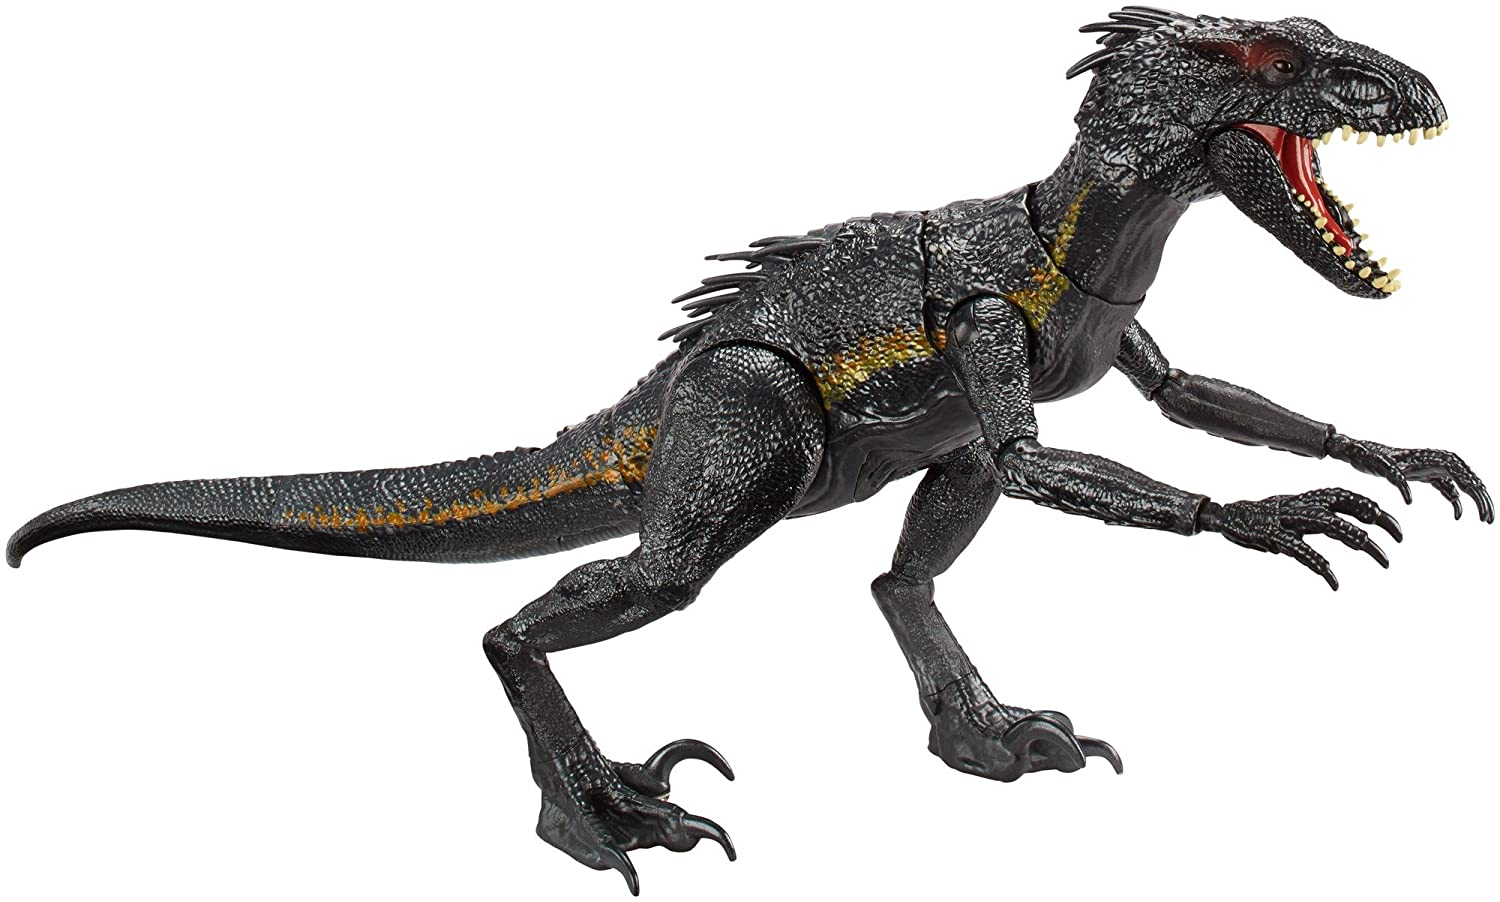 Jurassic World Grab 'n Growl Indoraptor Dinosaur Mattel FLY53